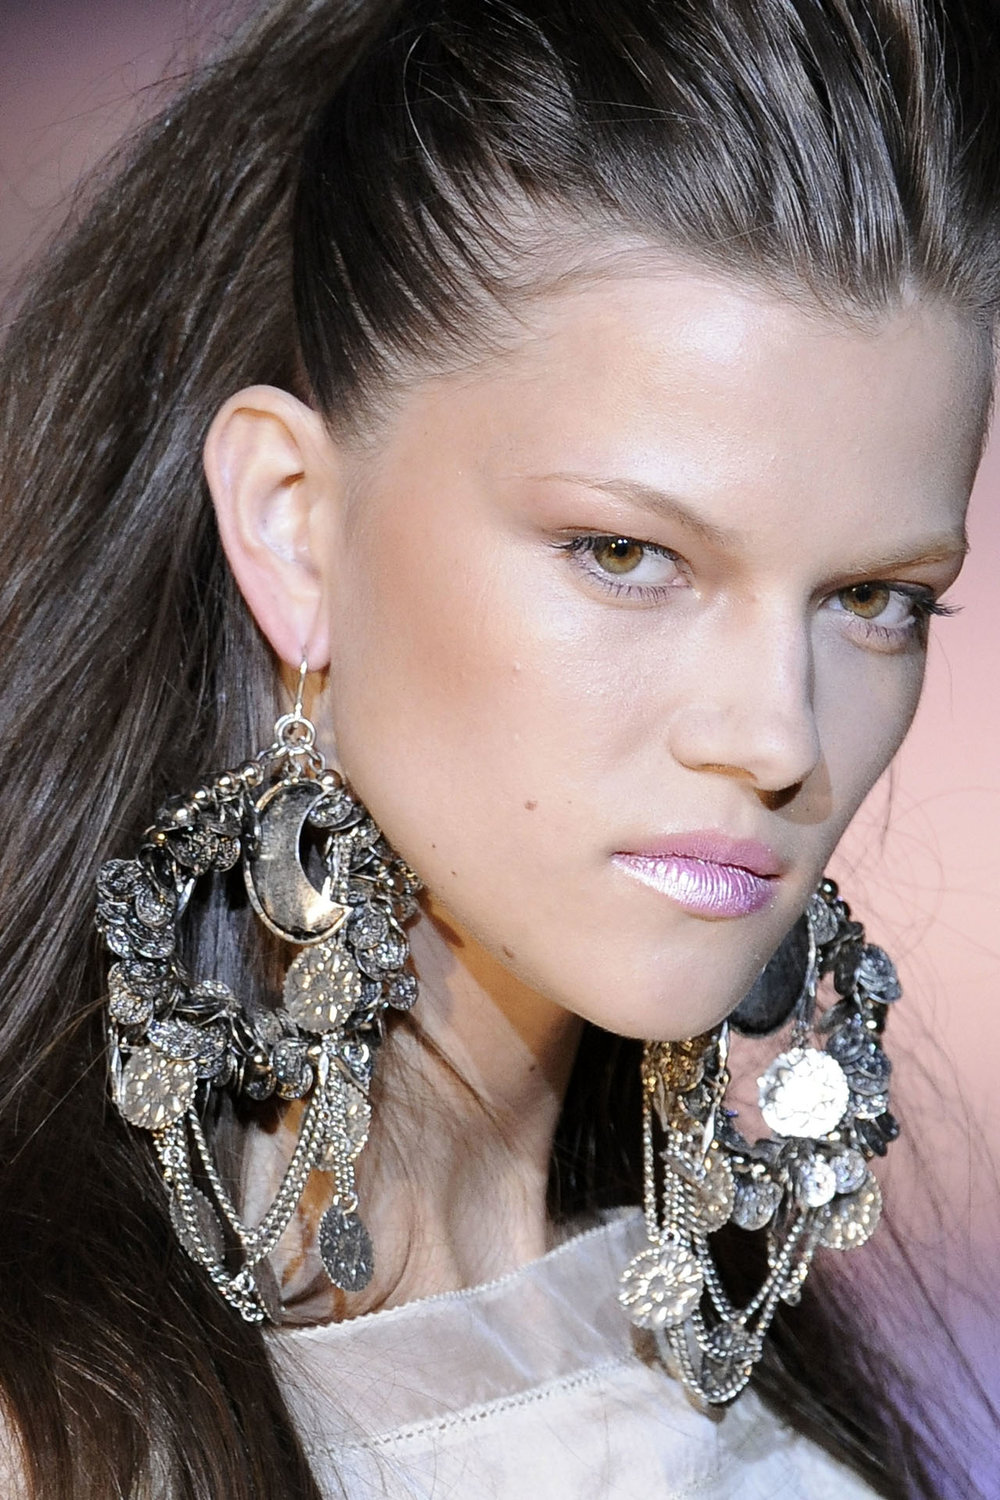 voguecom-loves-huge-earrings-voguecouk-earrings-big-l-c5eefdb99b51df34.jpg